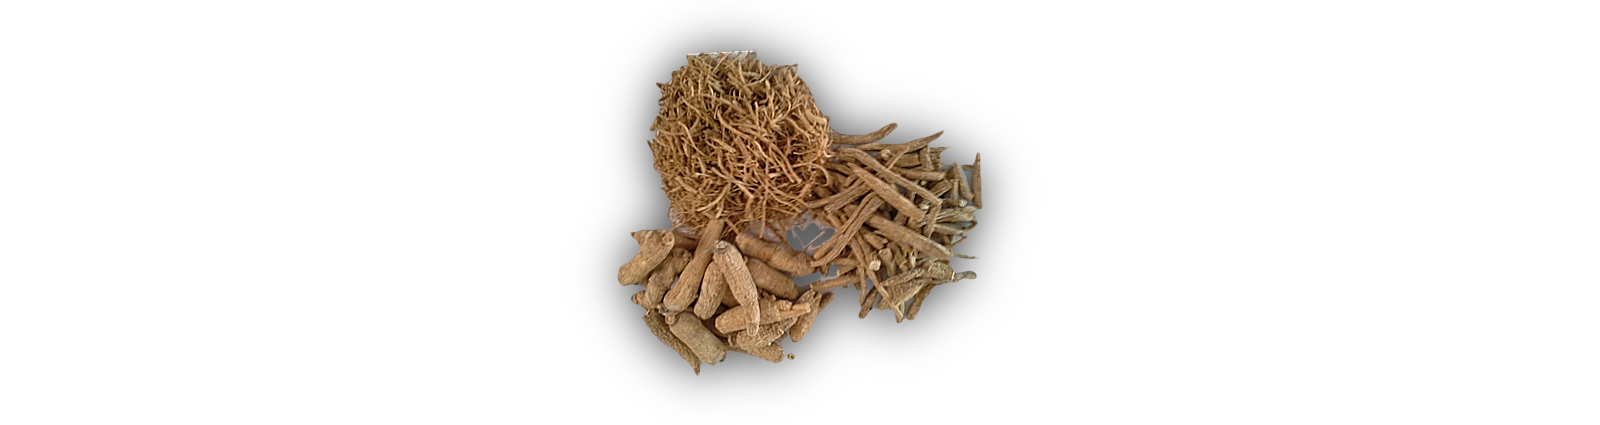 Kaiser-Farms-Ginseng-Whole-Root